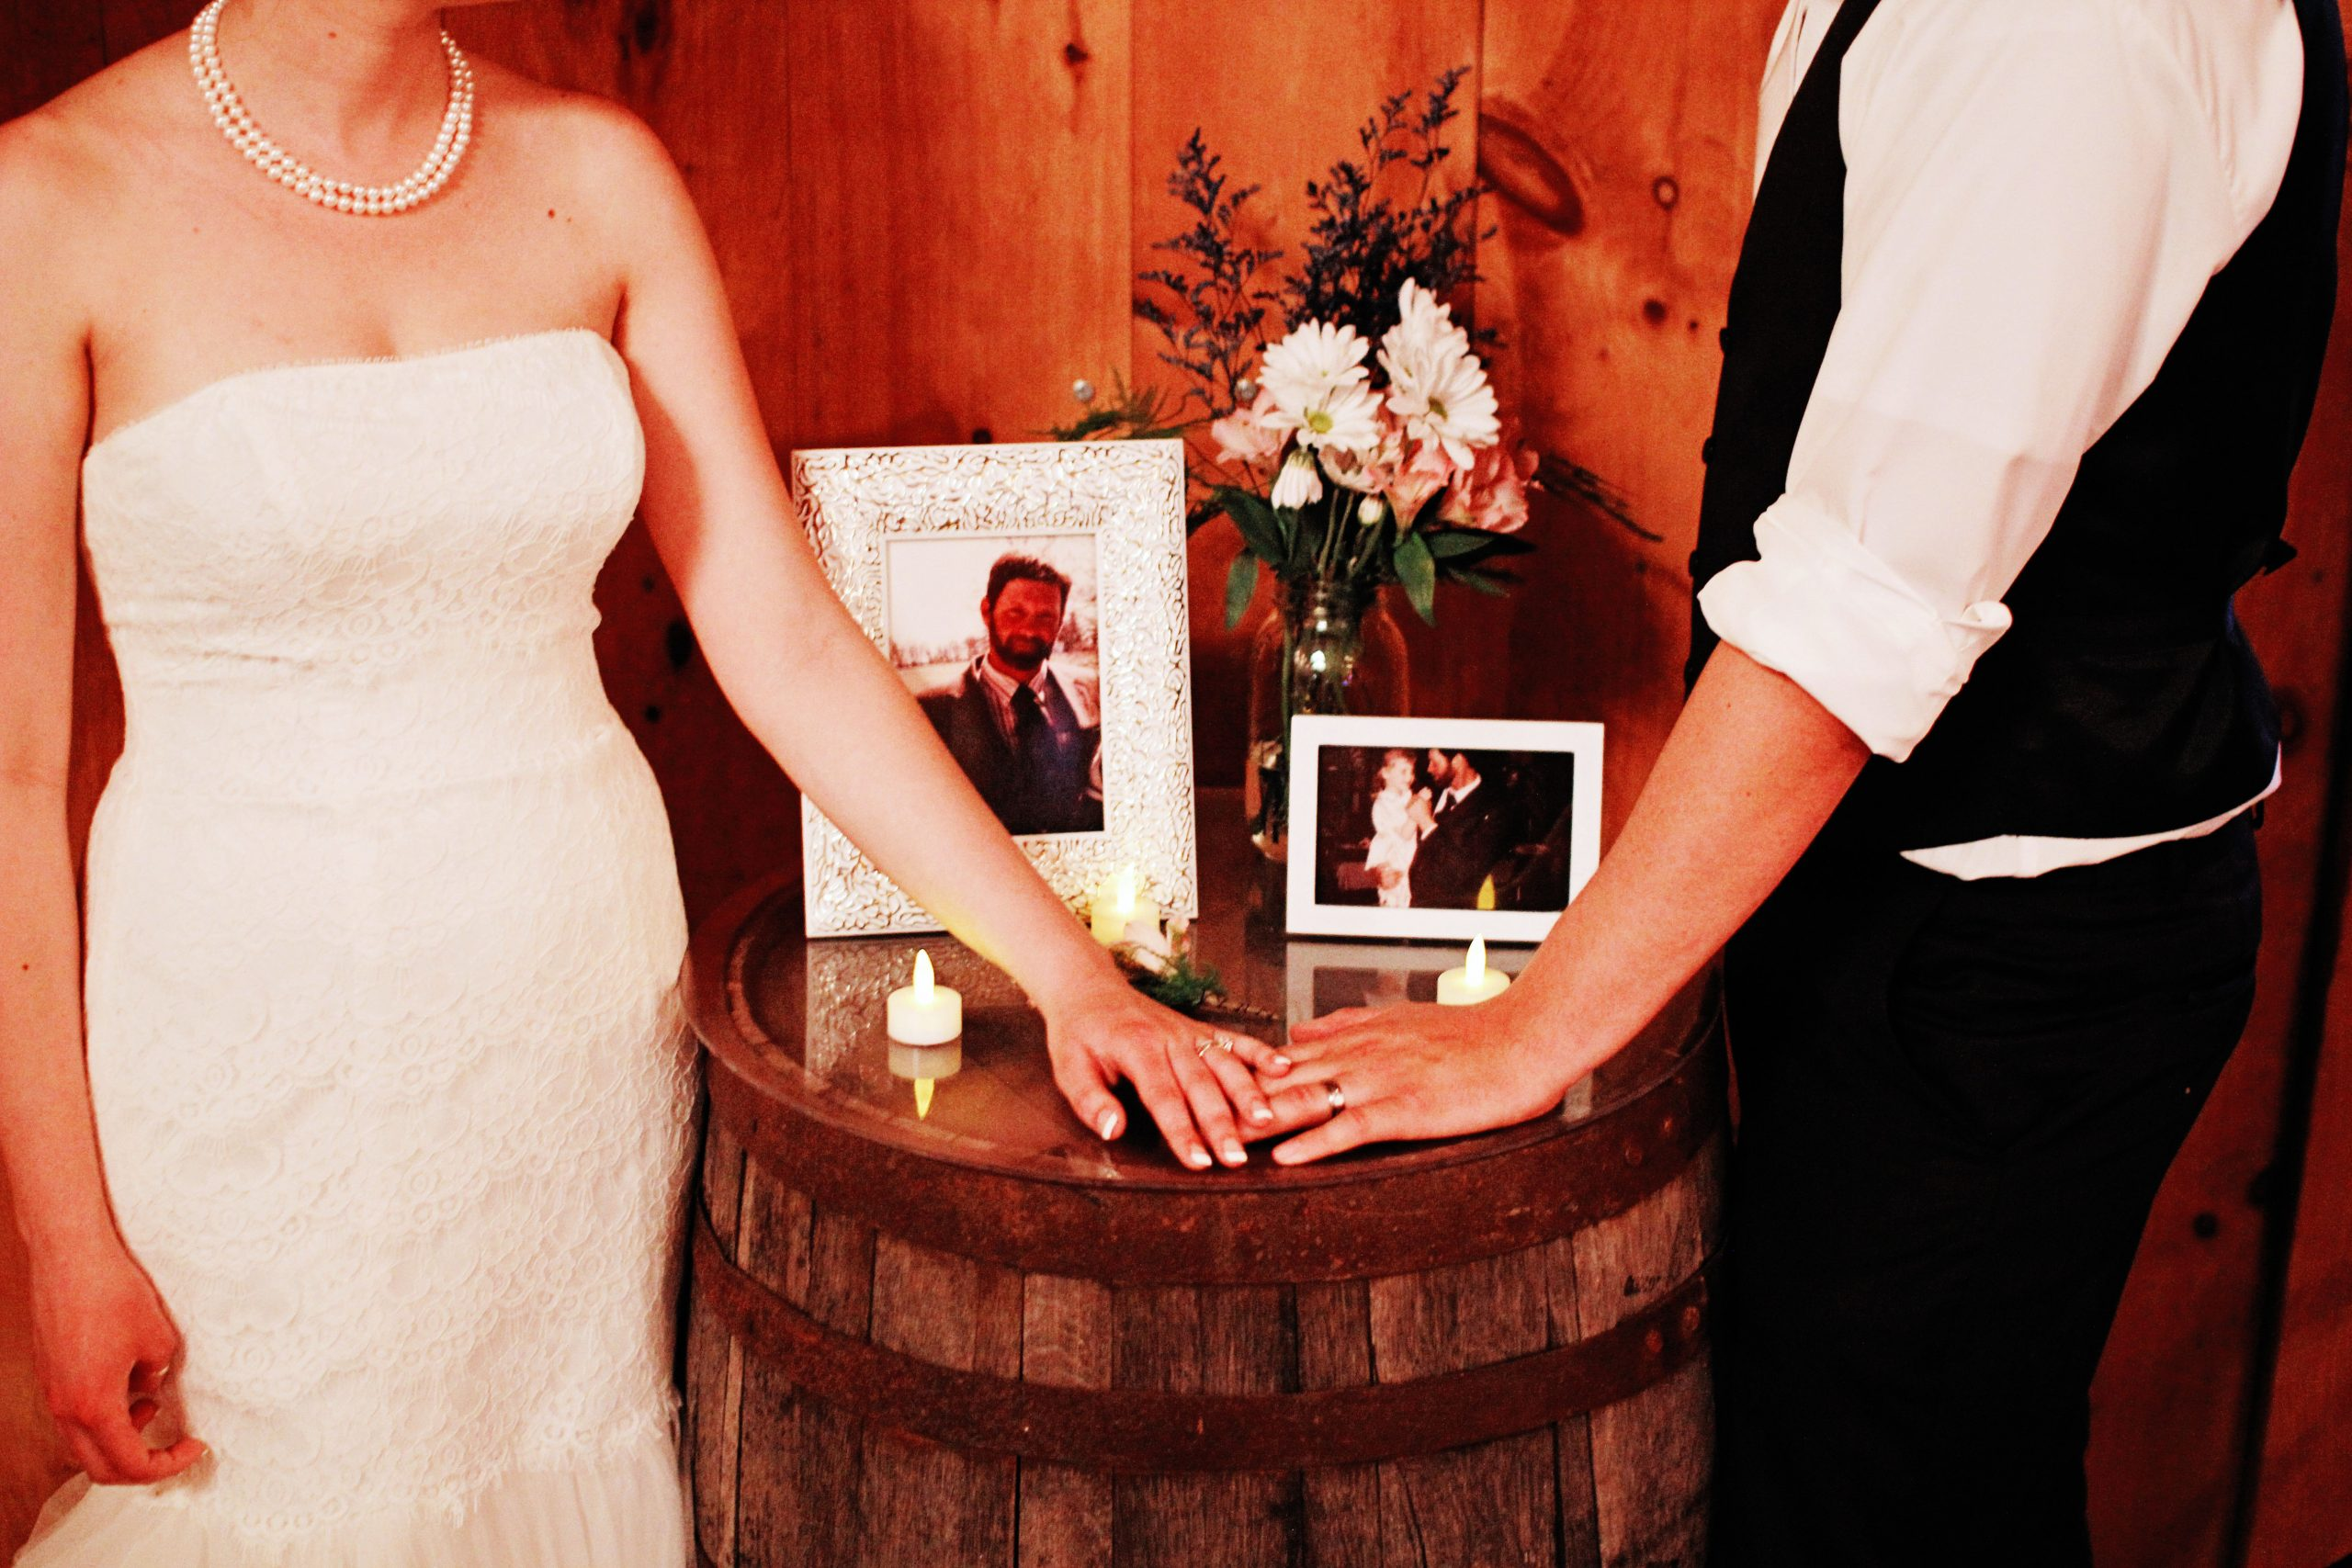 The wedding at Lakeview Farms of York, PA was not just a celebration of newlyweds but of those who have passed. Lovefusion Photography shot this of the couple remembering who they wish could be there to celebrate. Featured on Dream Weddings.